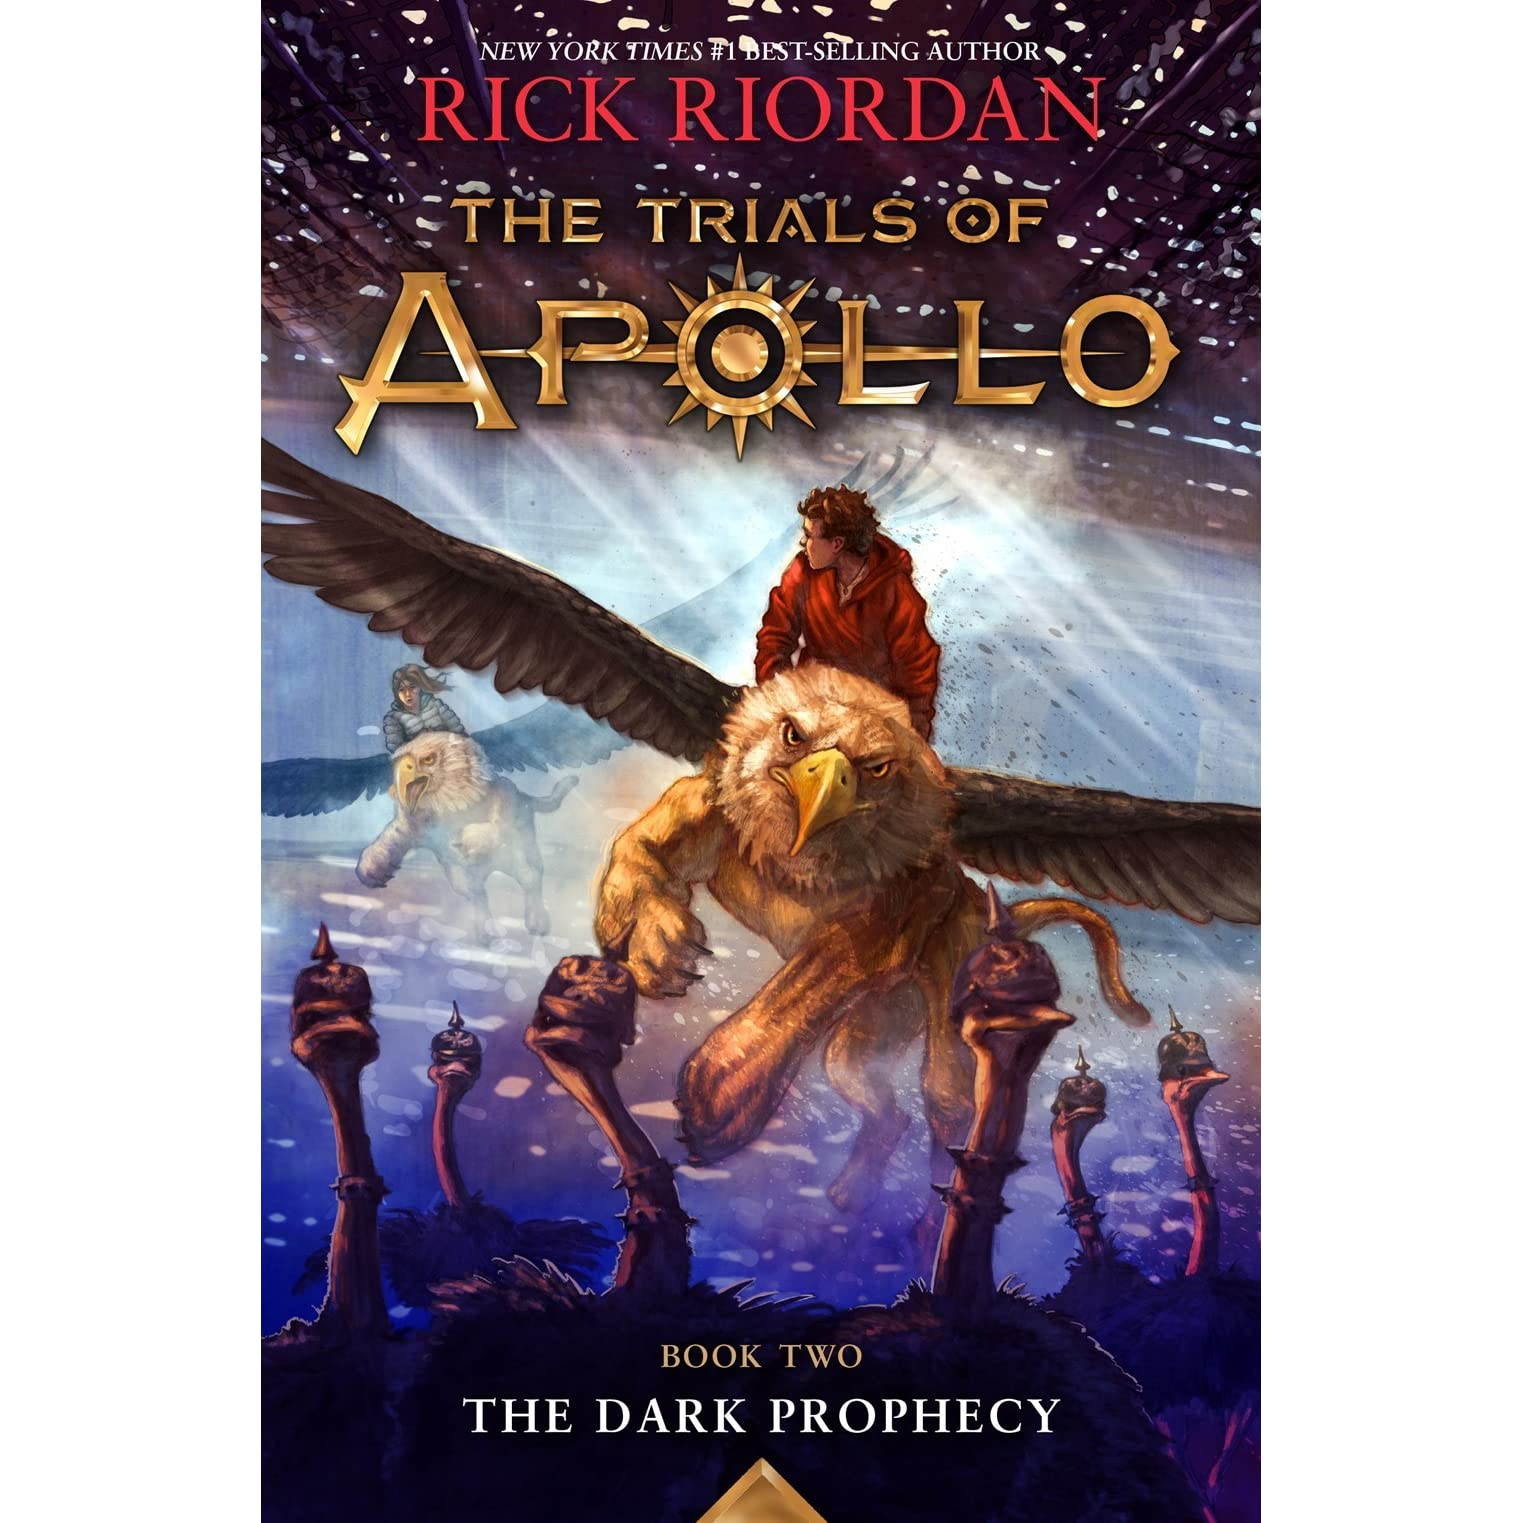 The Dark Prophecy (The Trials of Apollo, #2) by Rick Riordan